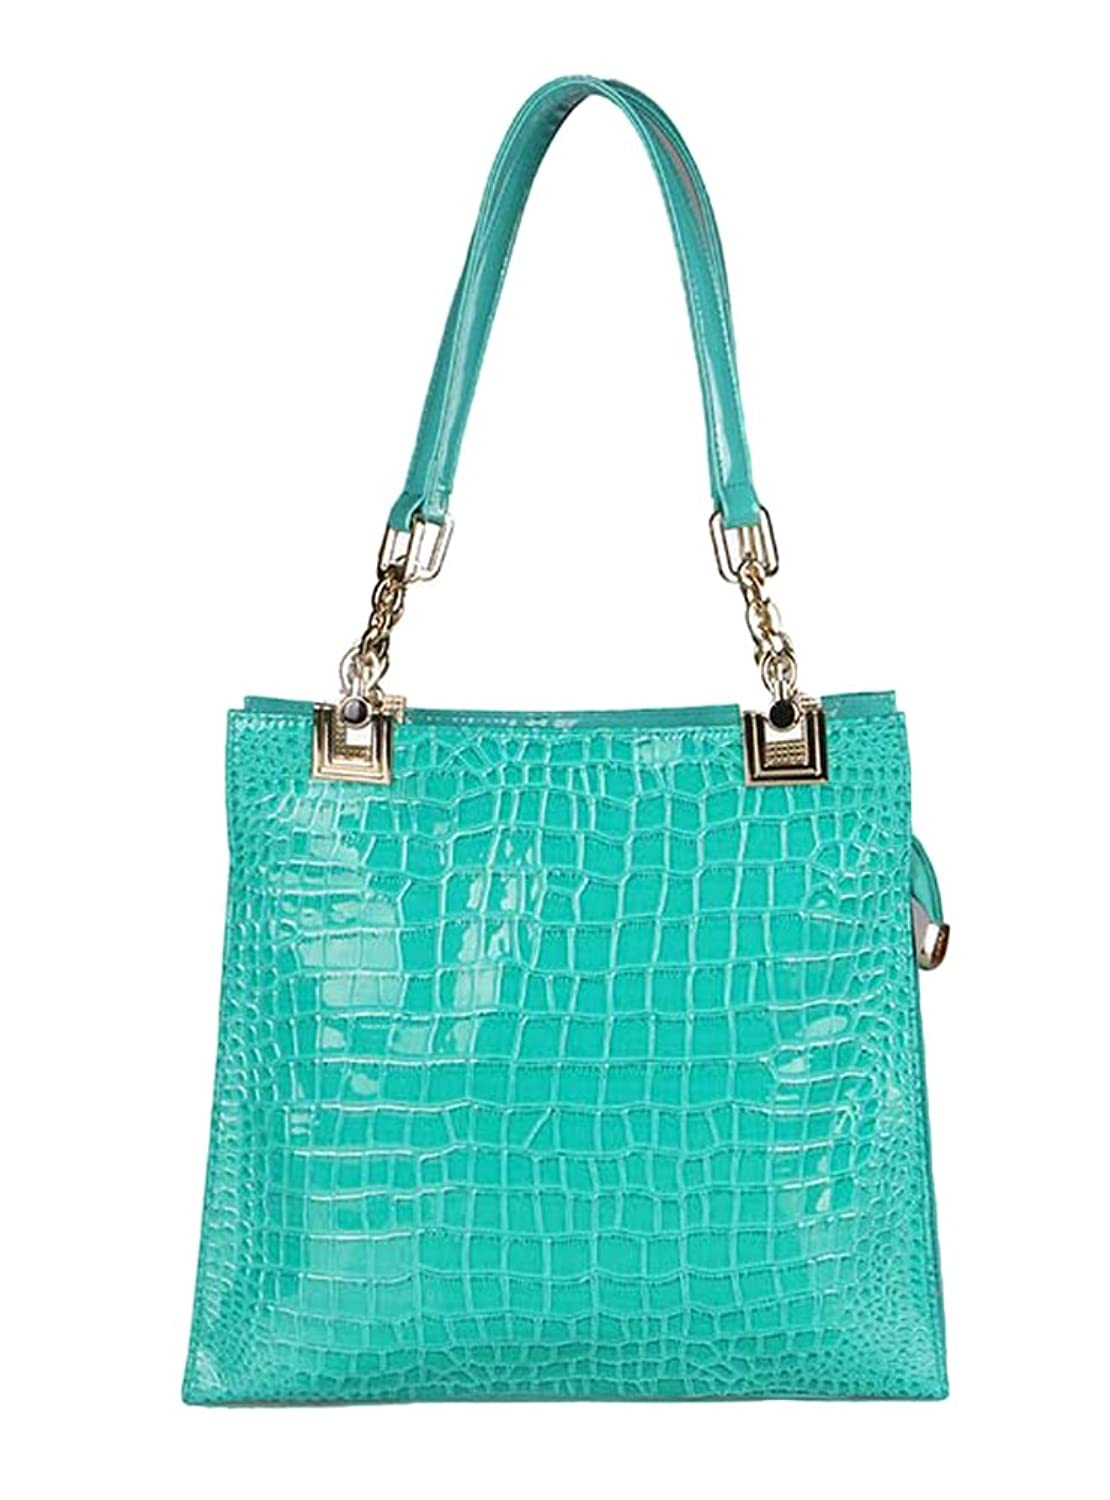 Tidecloth Women's Fashion Shoulder Bag Green One Size